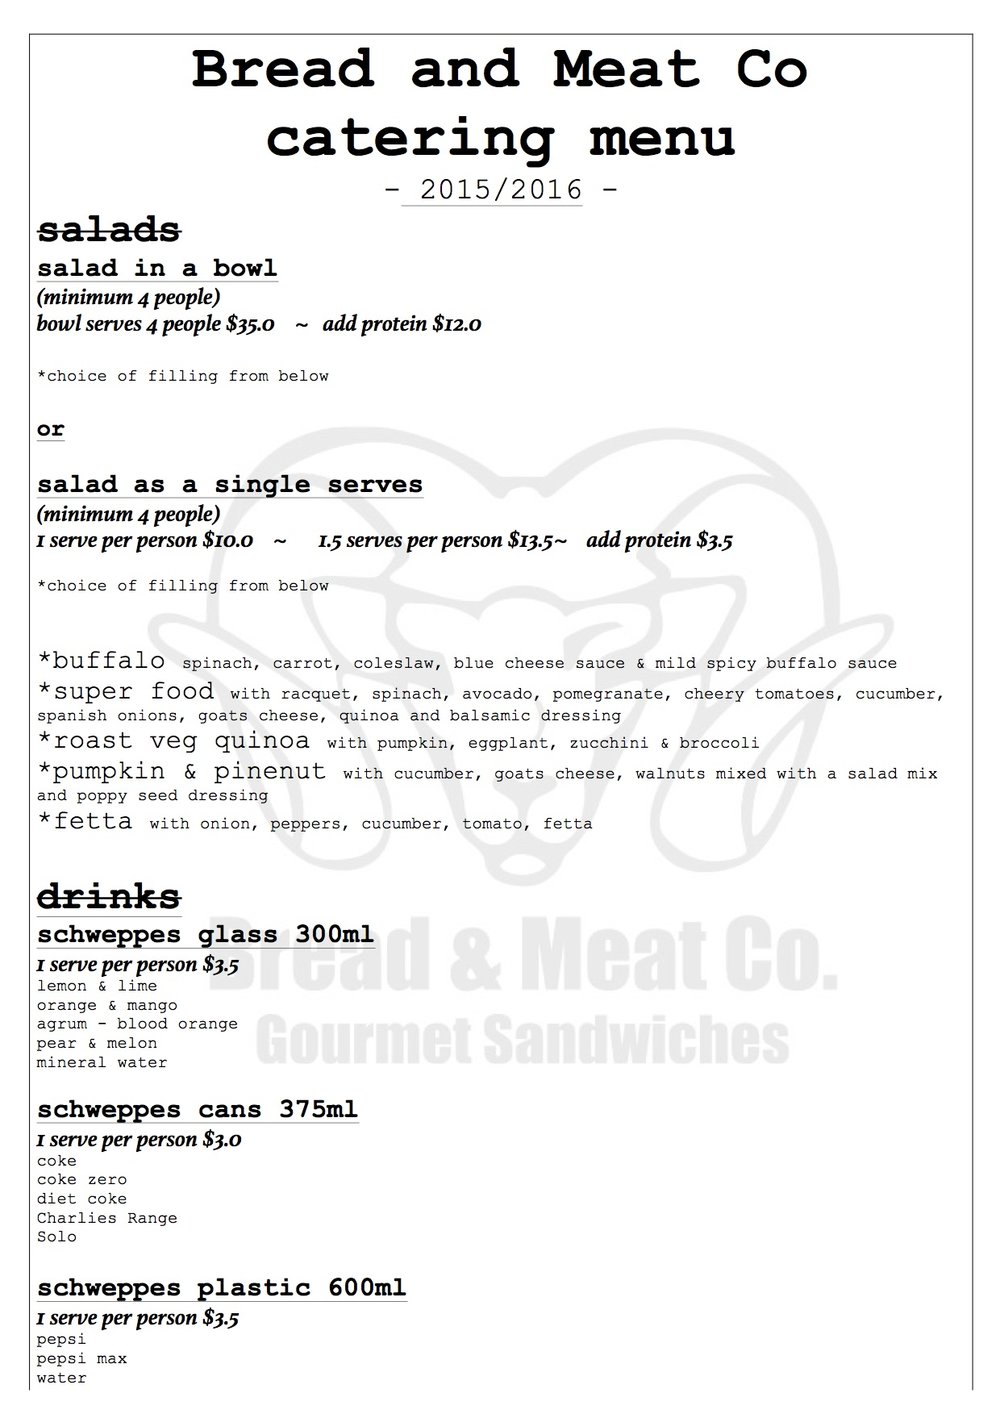 BREAD AND MEAT CO CBW catering menu Jan 2016:2.jpg